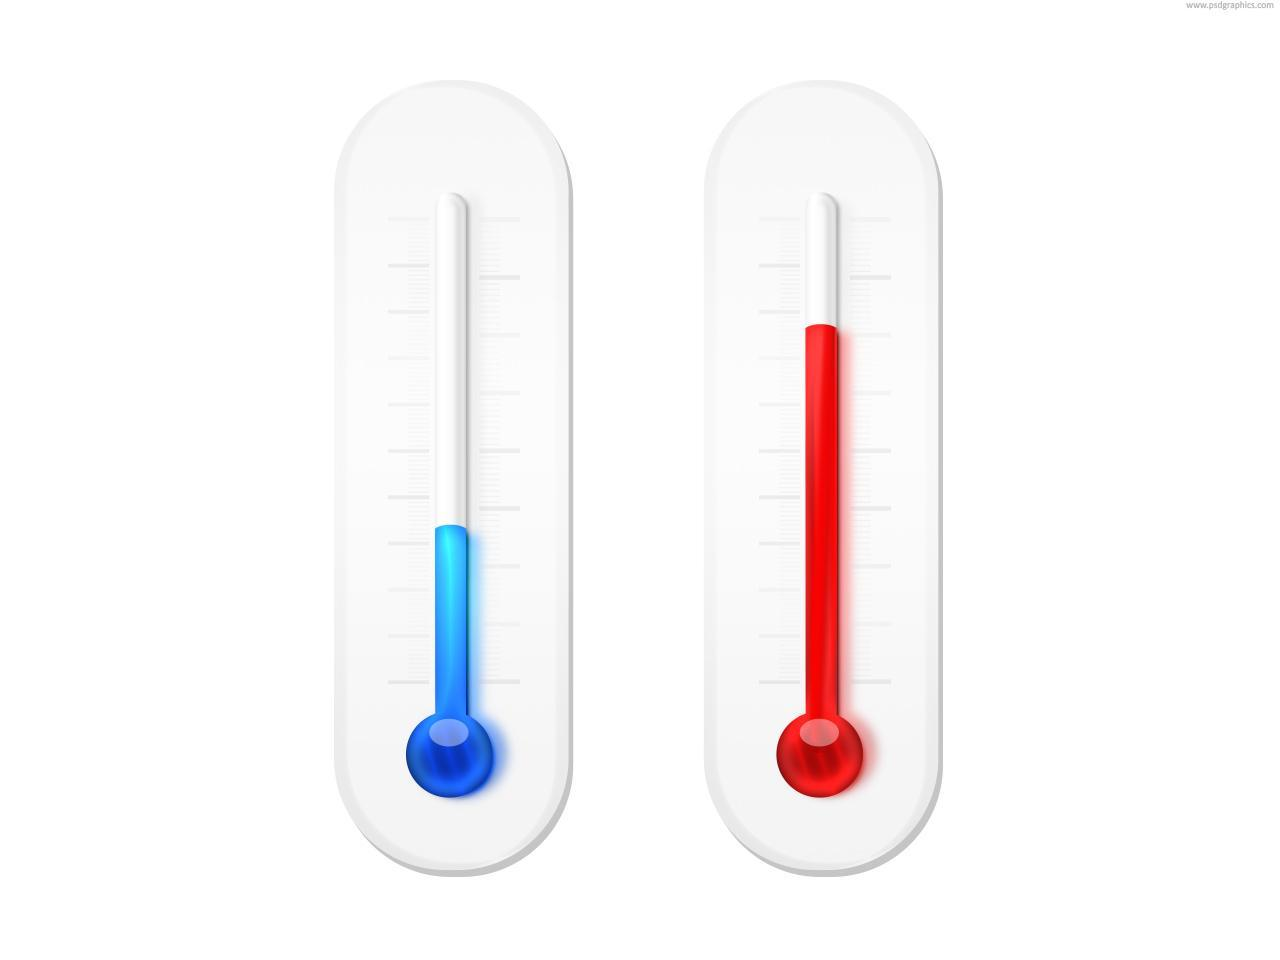 What's your favorite temperature?